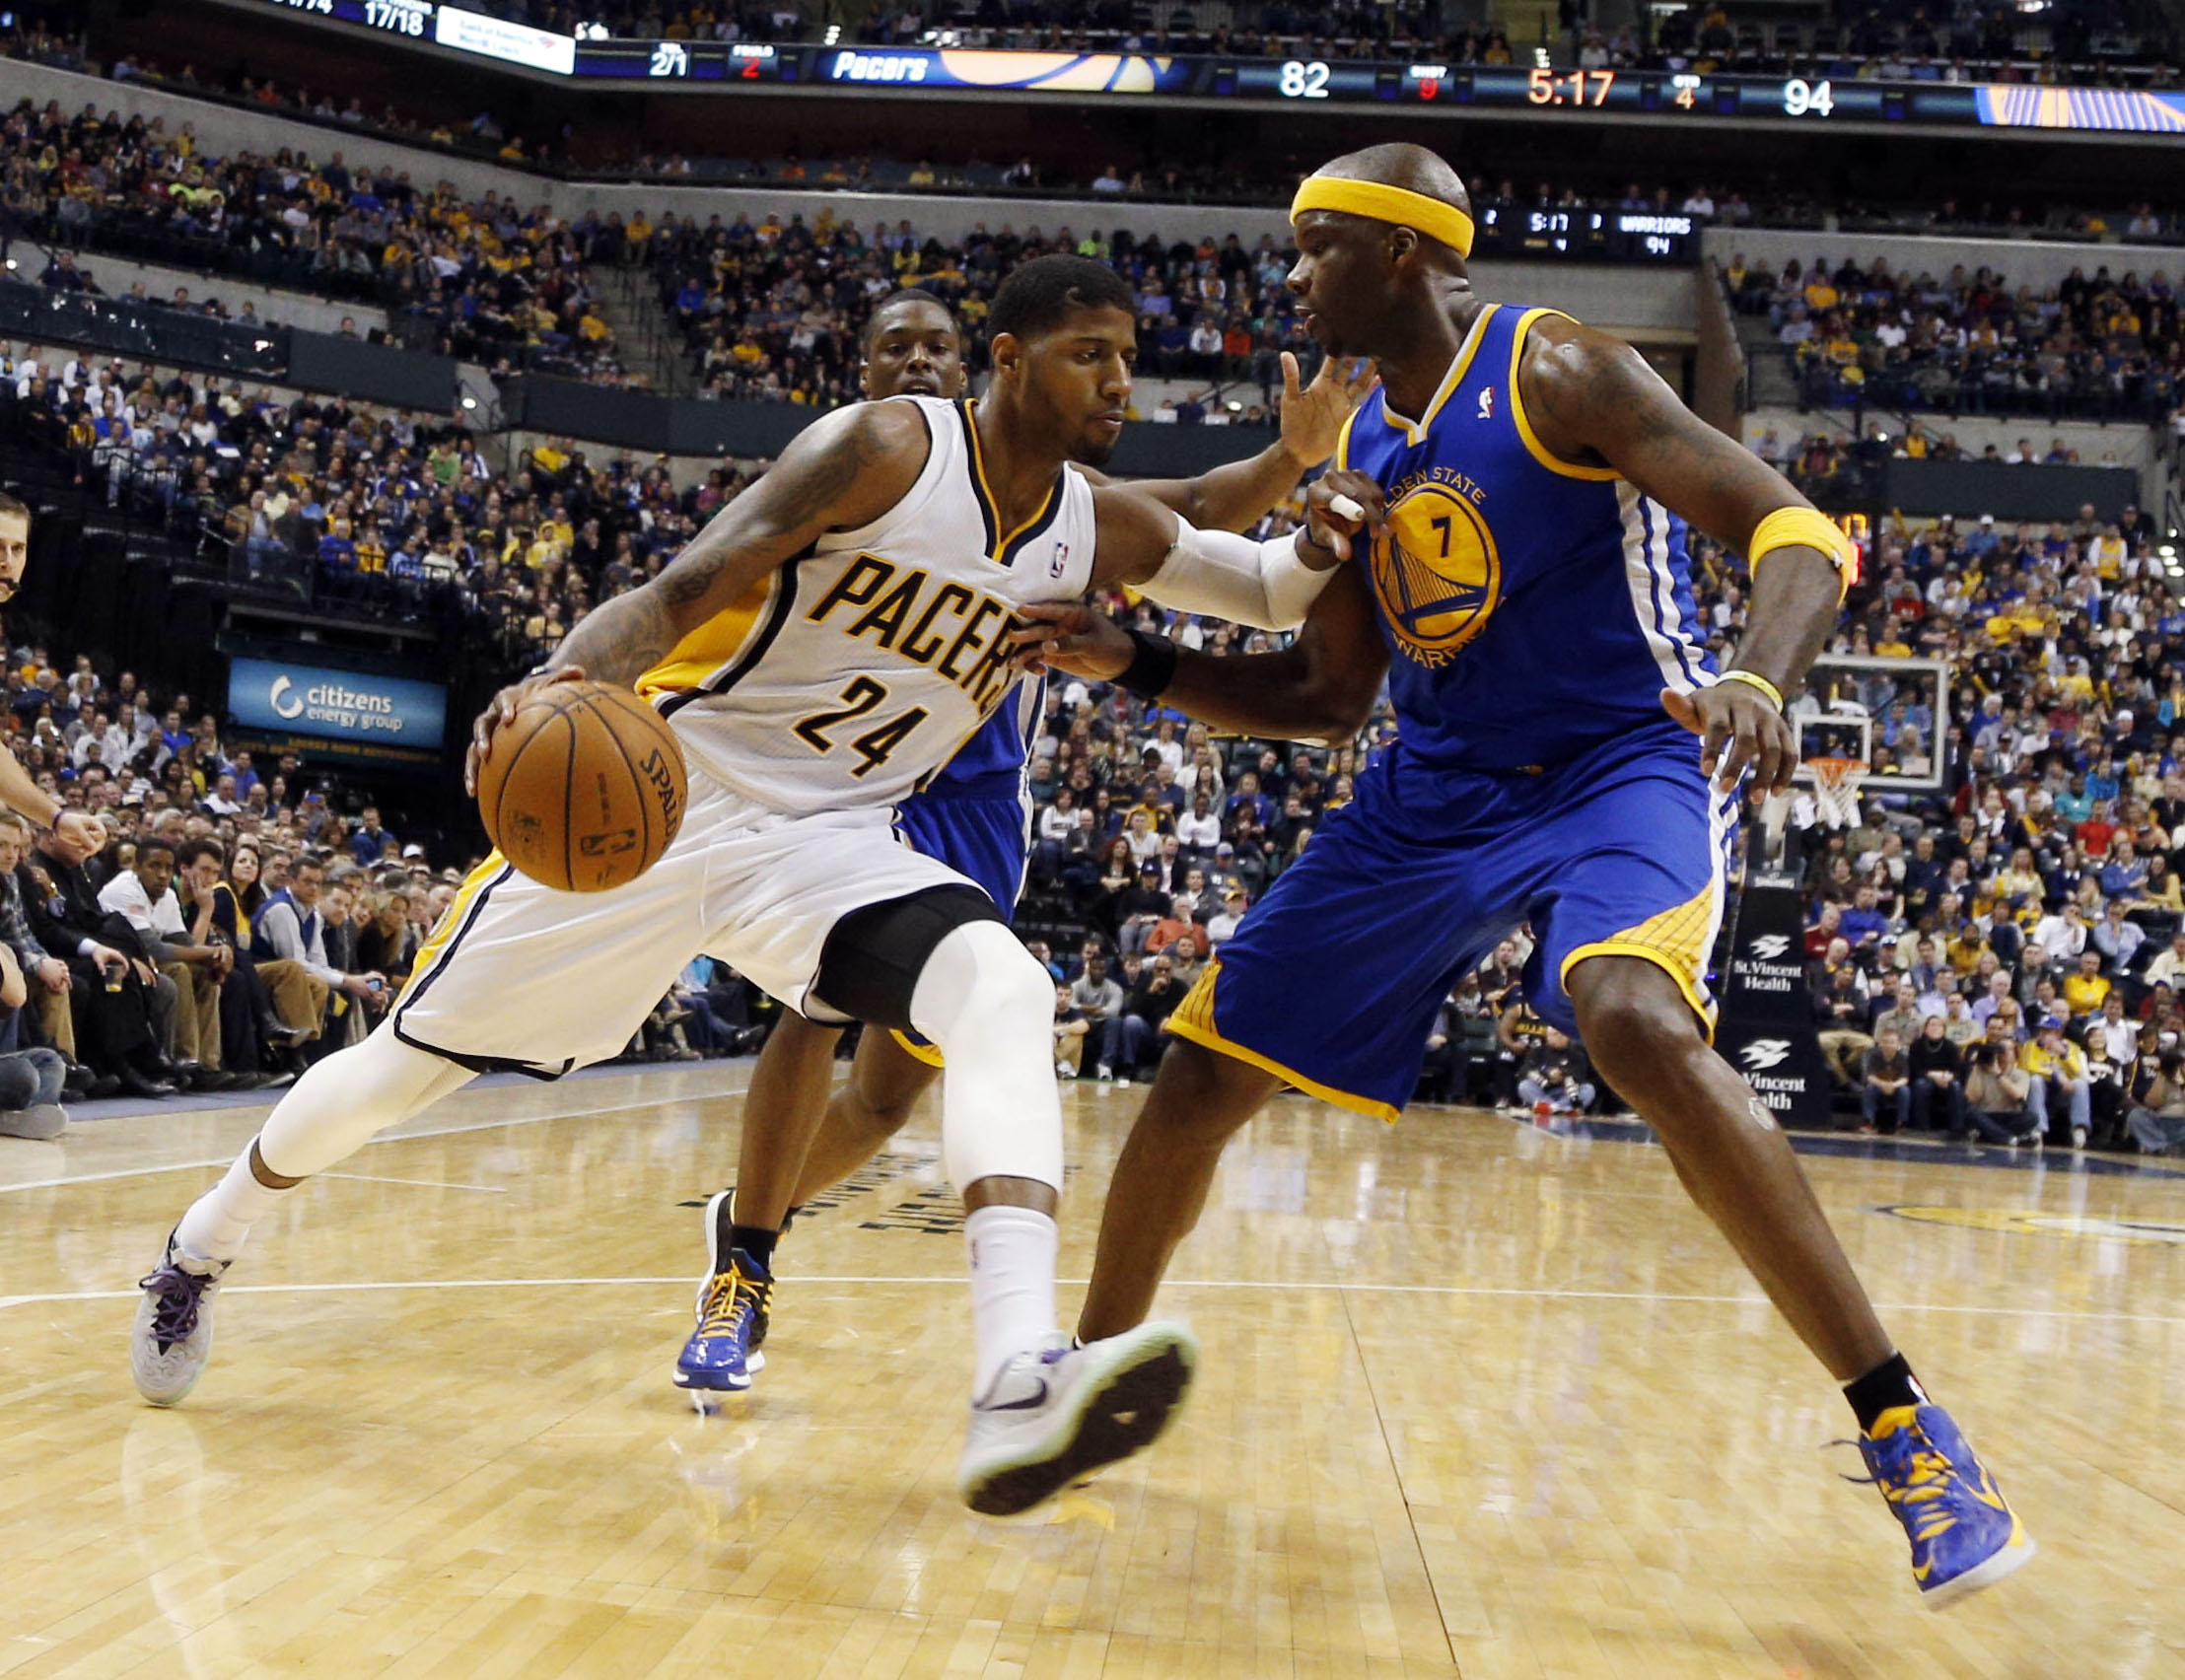 7783310-nba-golden-state-warriors-at-indiana-pacers